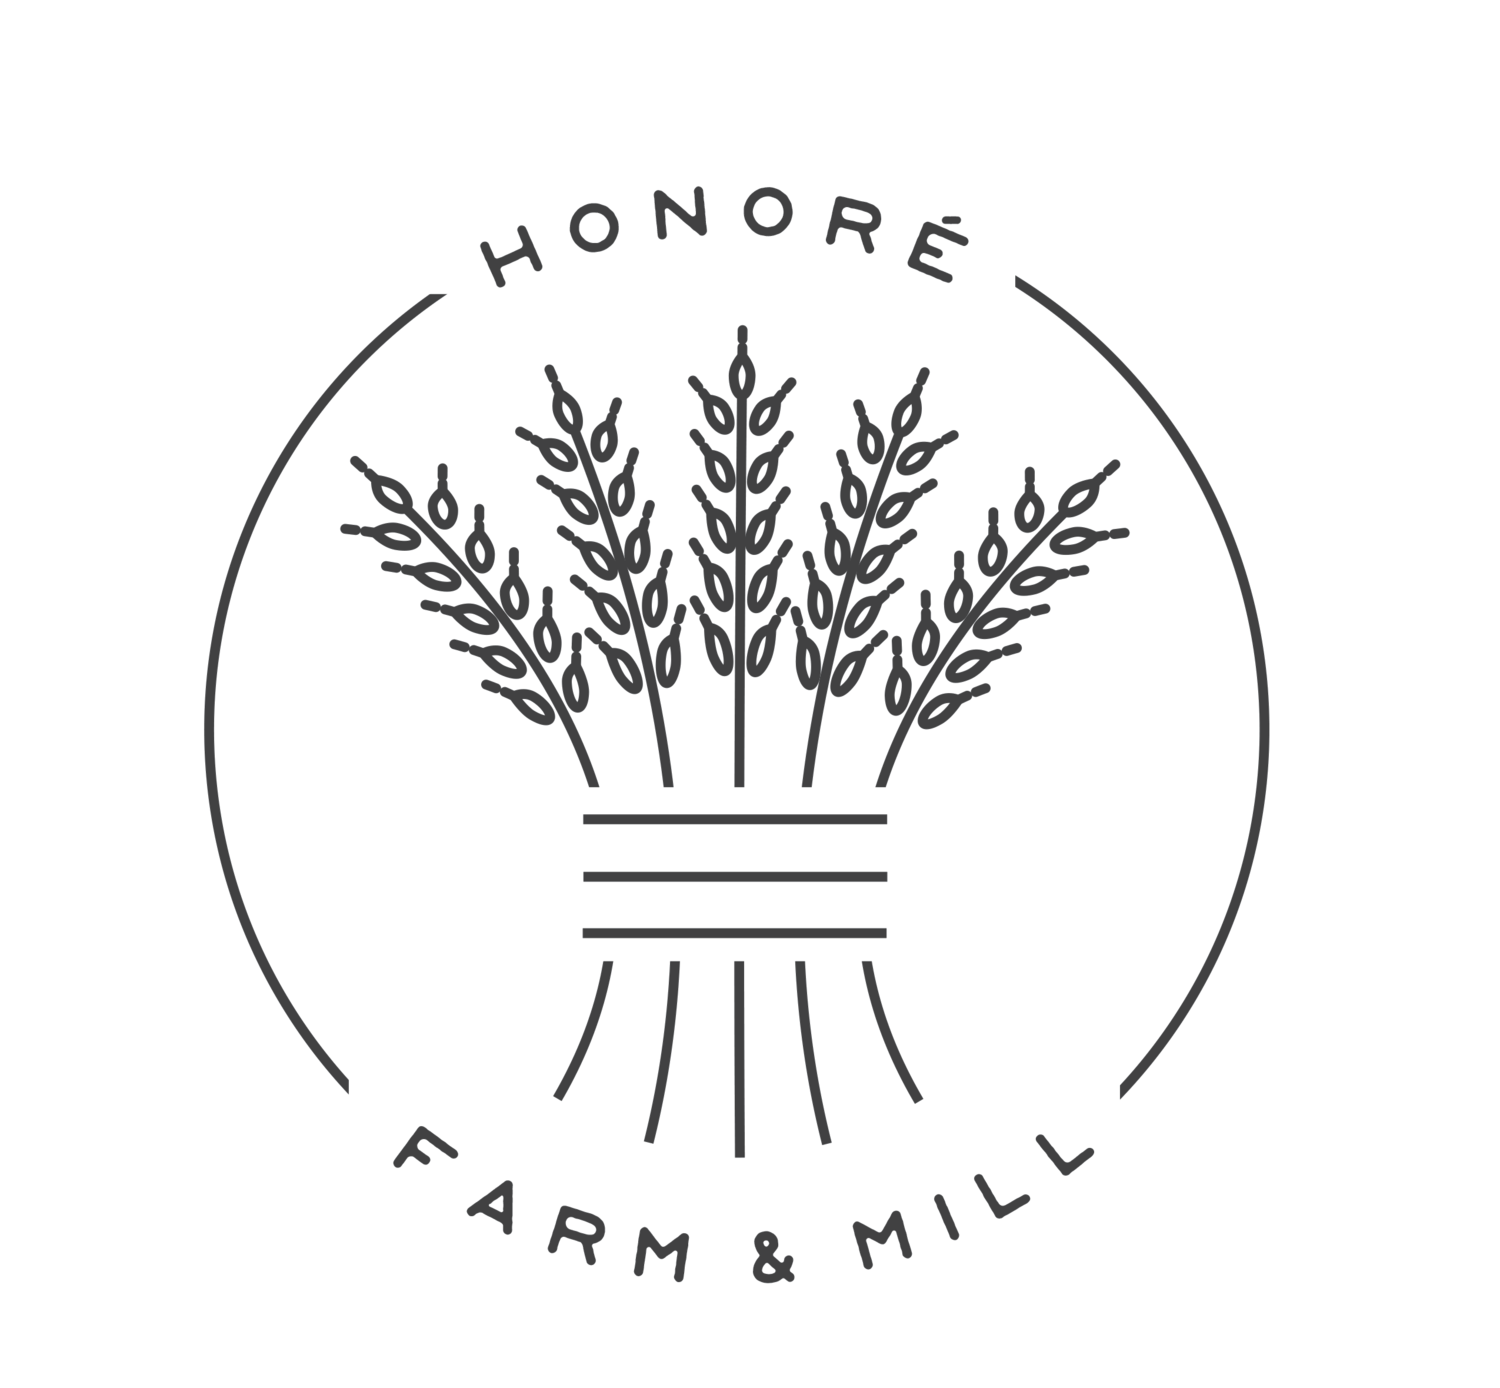 Honore Farm and Mill